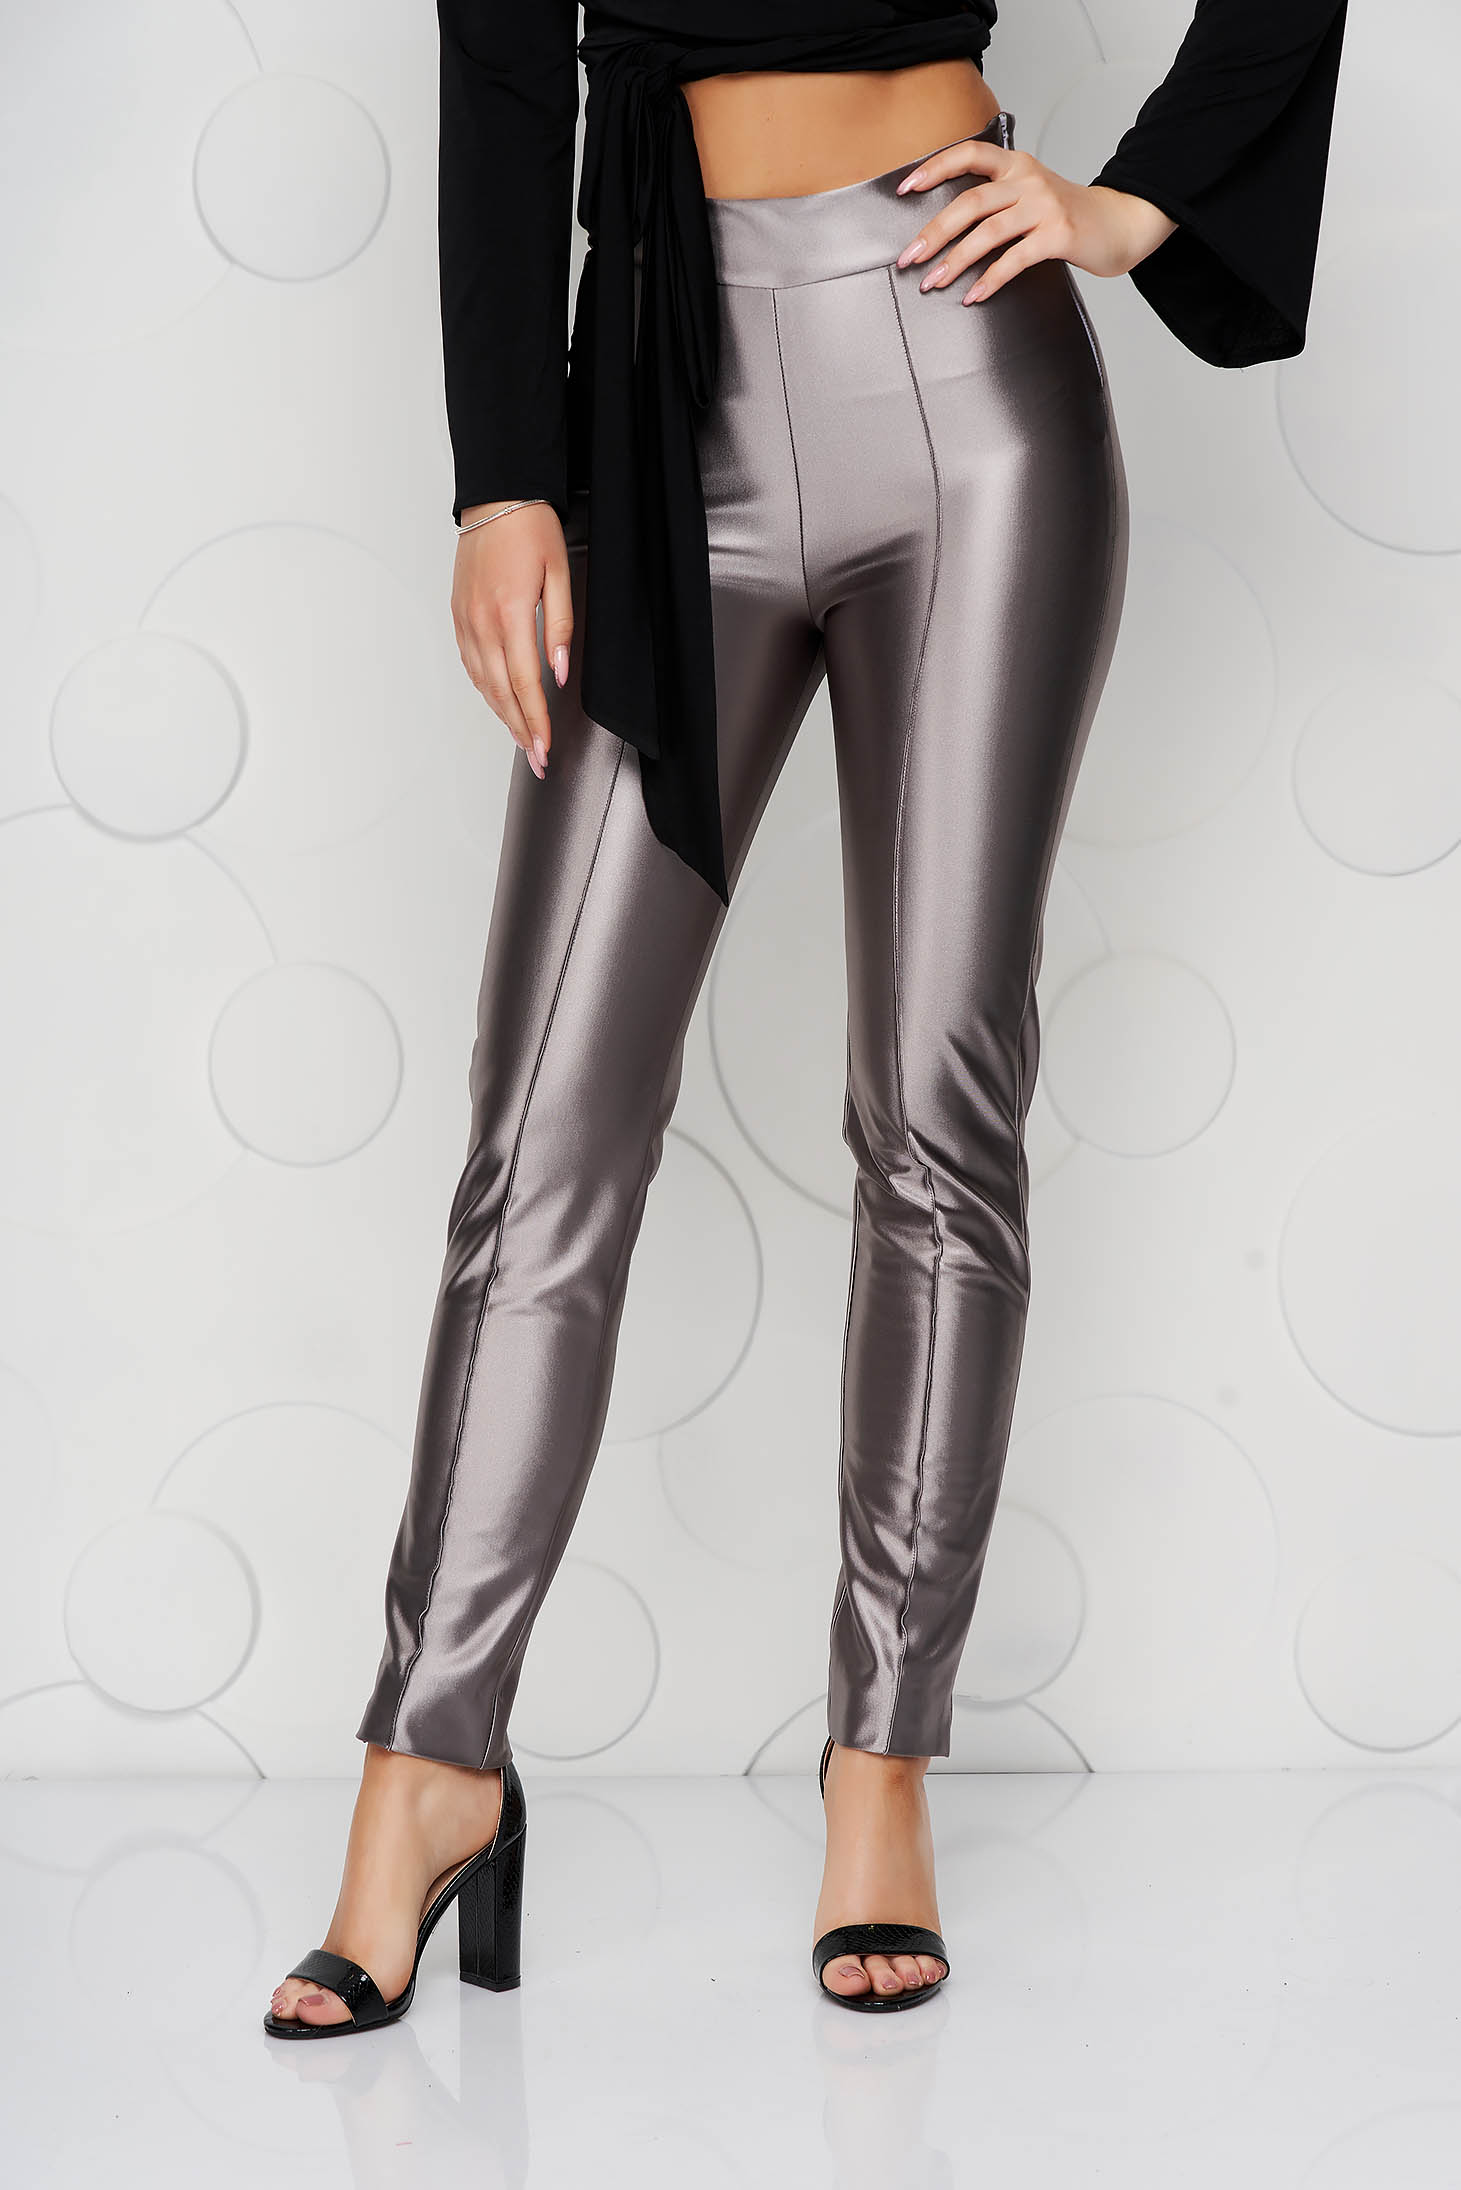 StarShinerS silver trousers slightly elastic fabric elegant conical